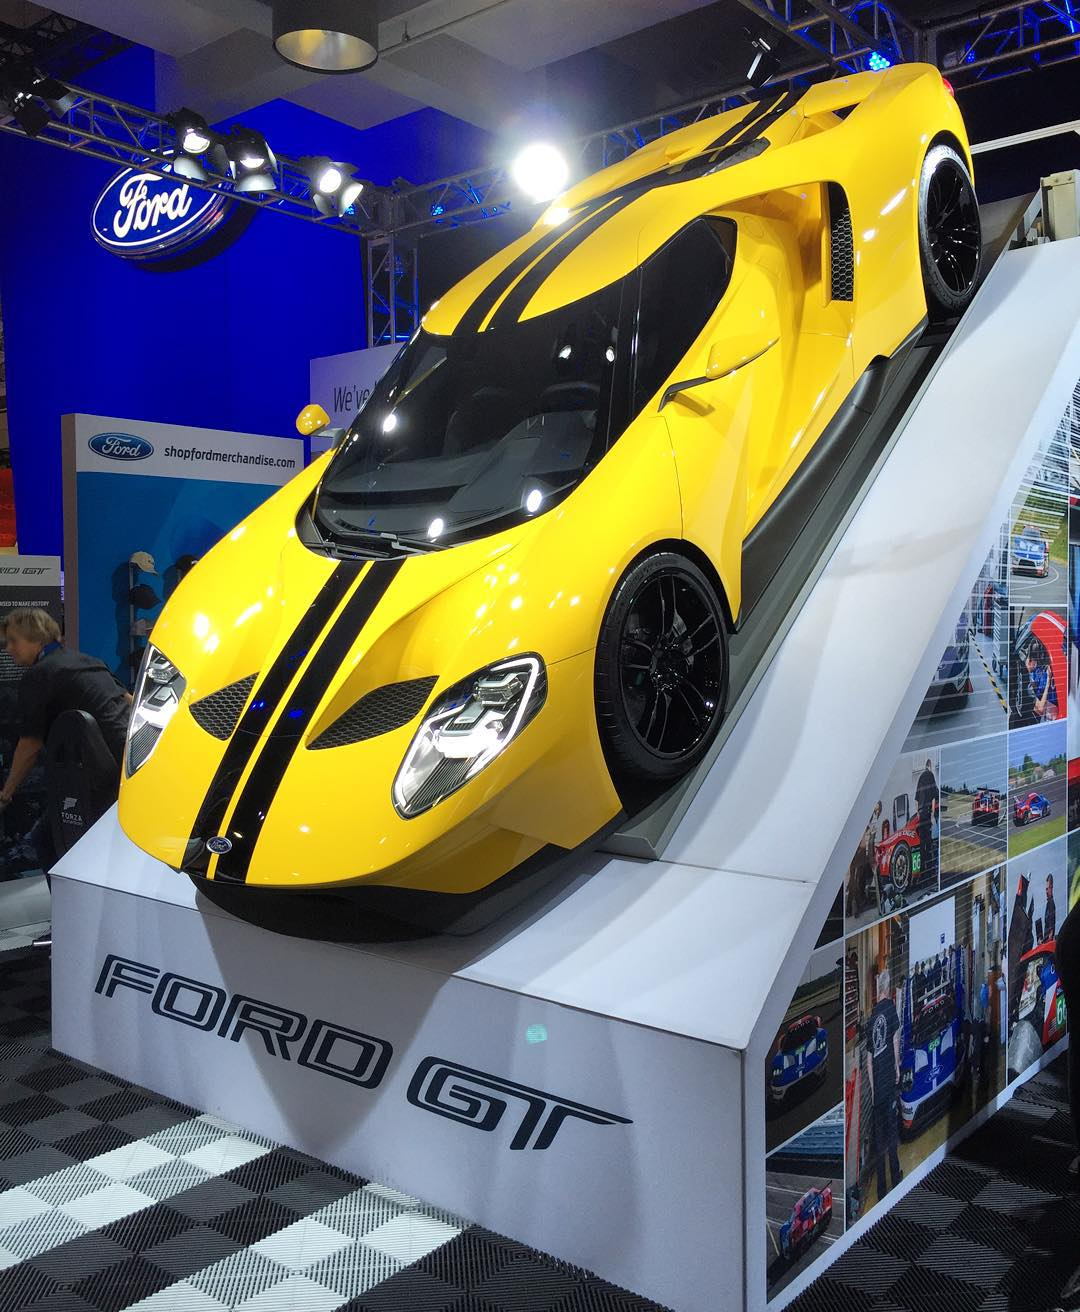 I've never really been into supercars (I like cars that I can jump and thrash around), but this new yellow Ford GT in their SEMA booth looks stunning. #somuchwant #FordGT #thataerothough